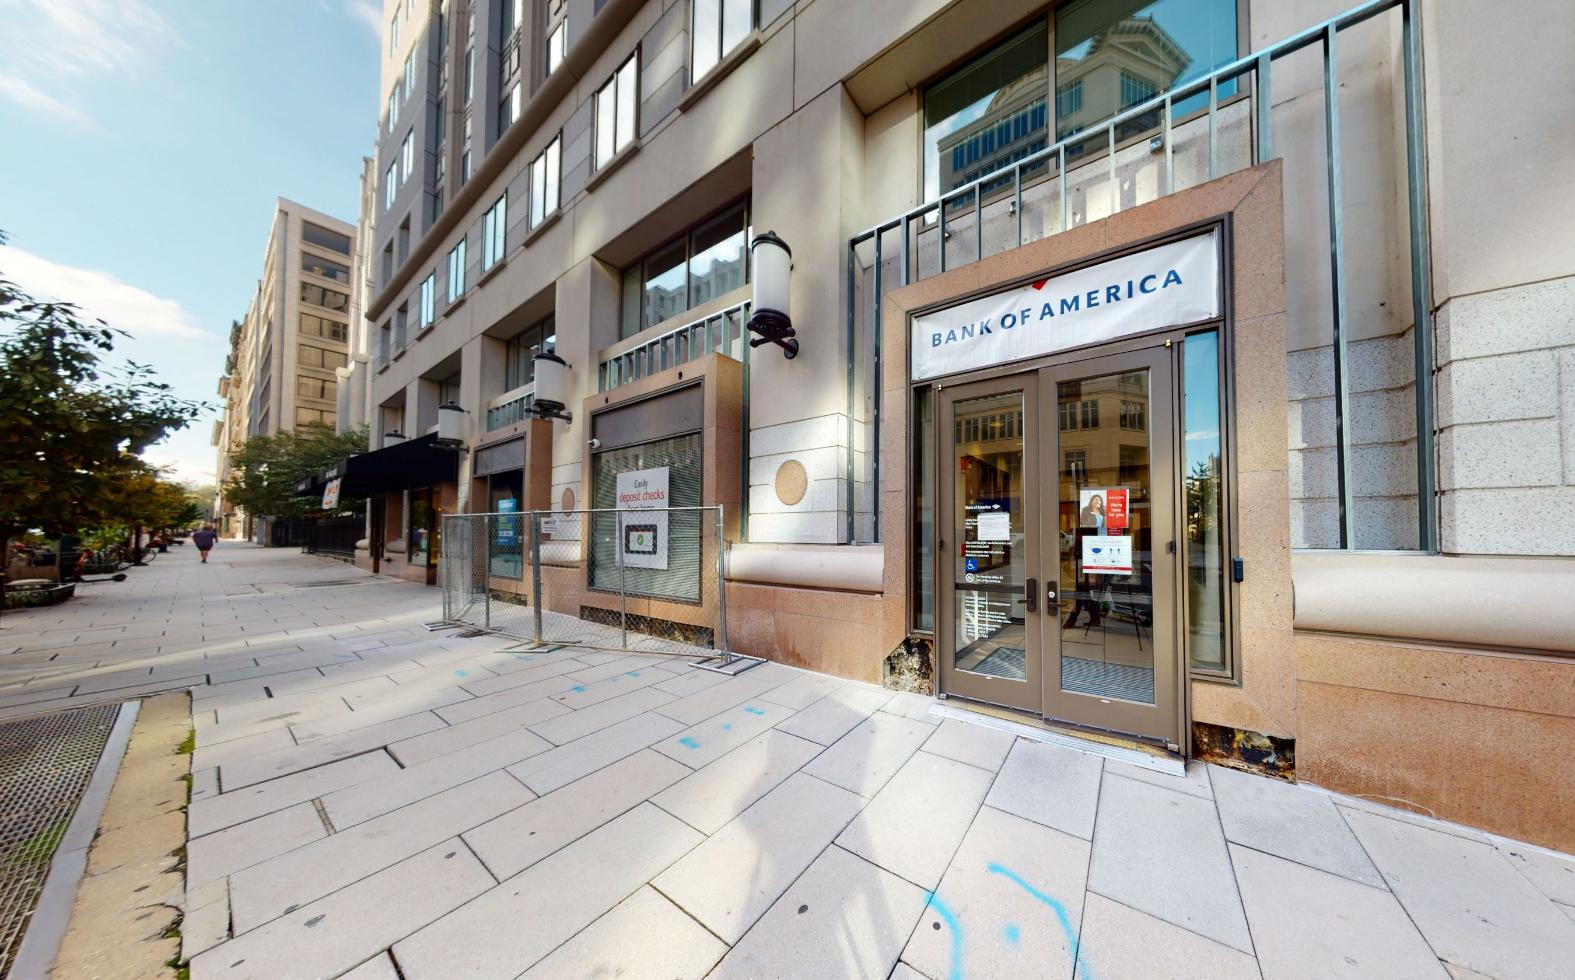 Bank of America financial center with walk-up ATM | 700 13th St NW, Washington, DC 20005